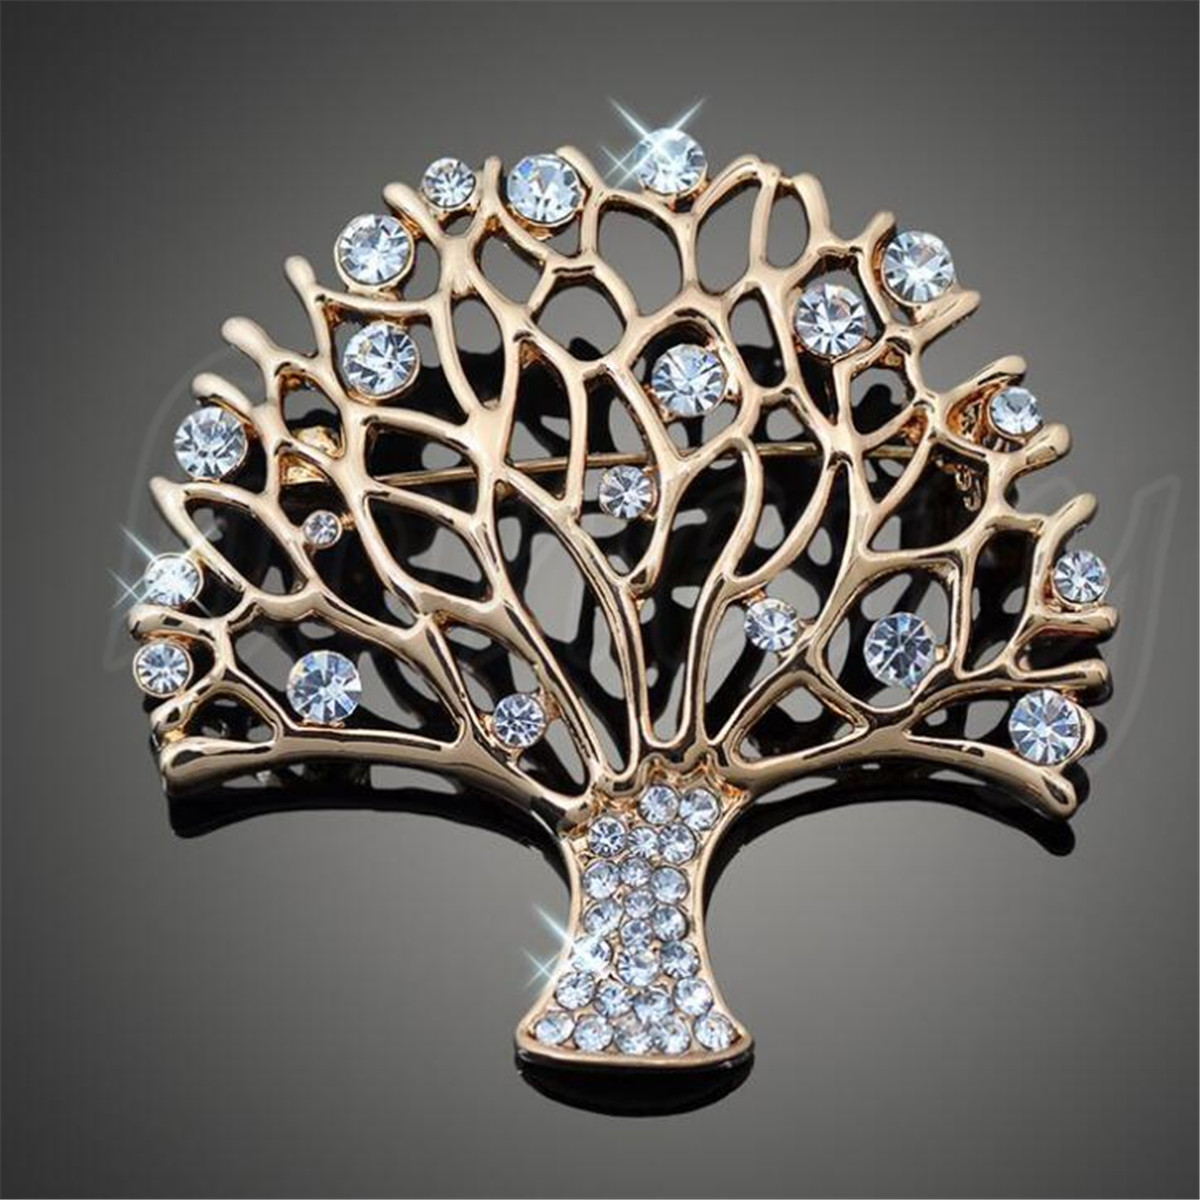 Details about Fashion Jewelry Tree of Life Brooch Pin Party Wear Crystal  Tropical Brooch Pin